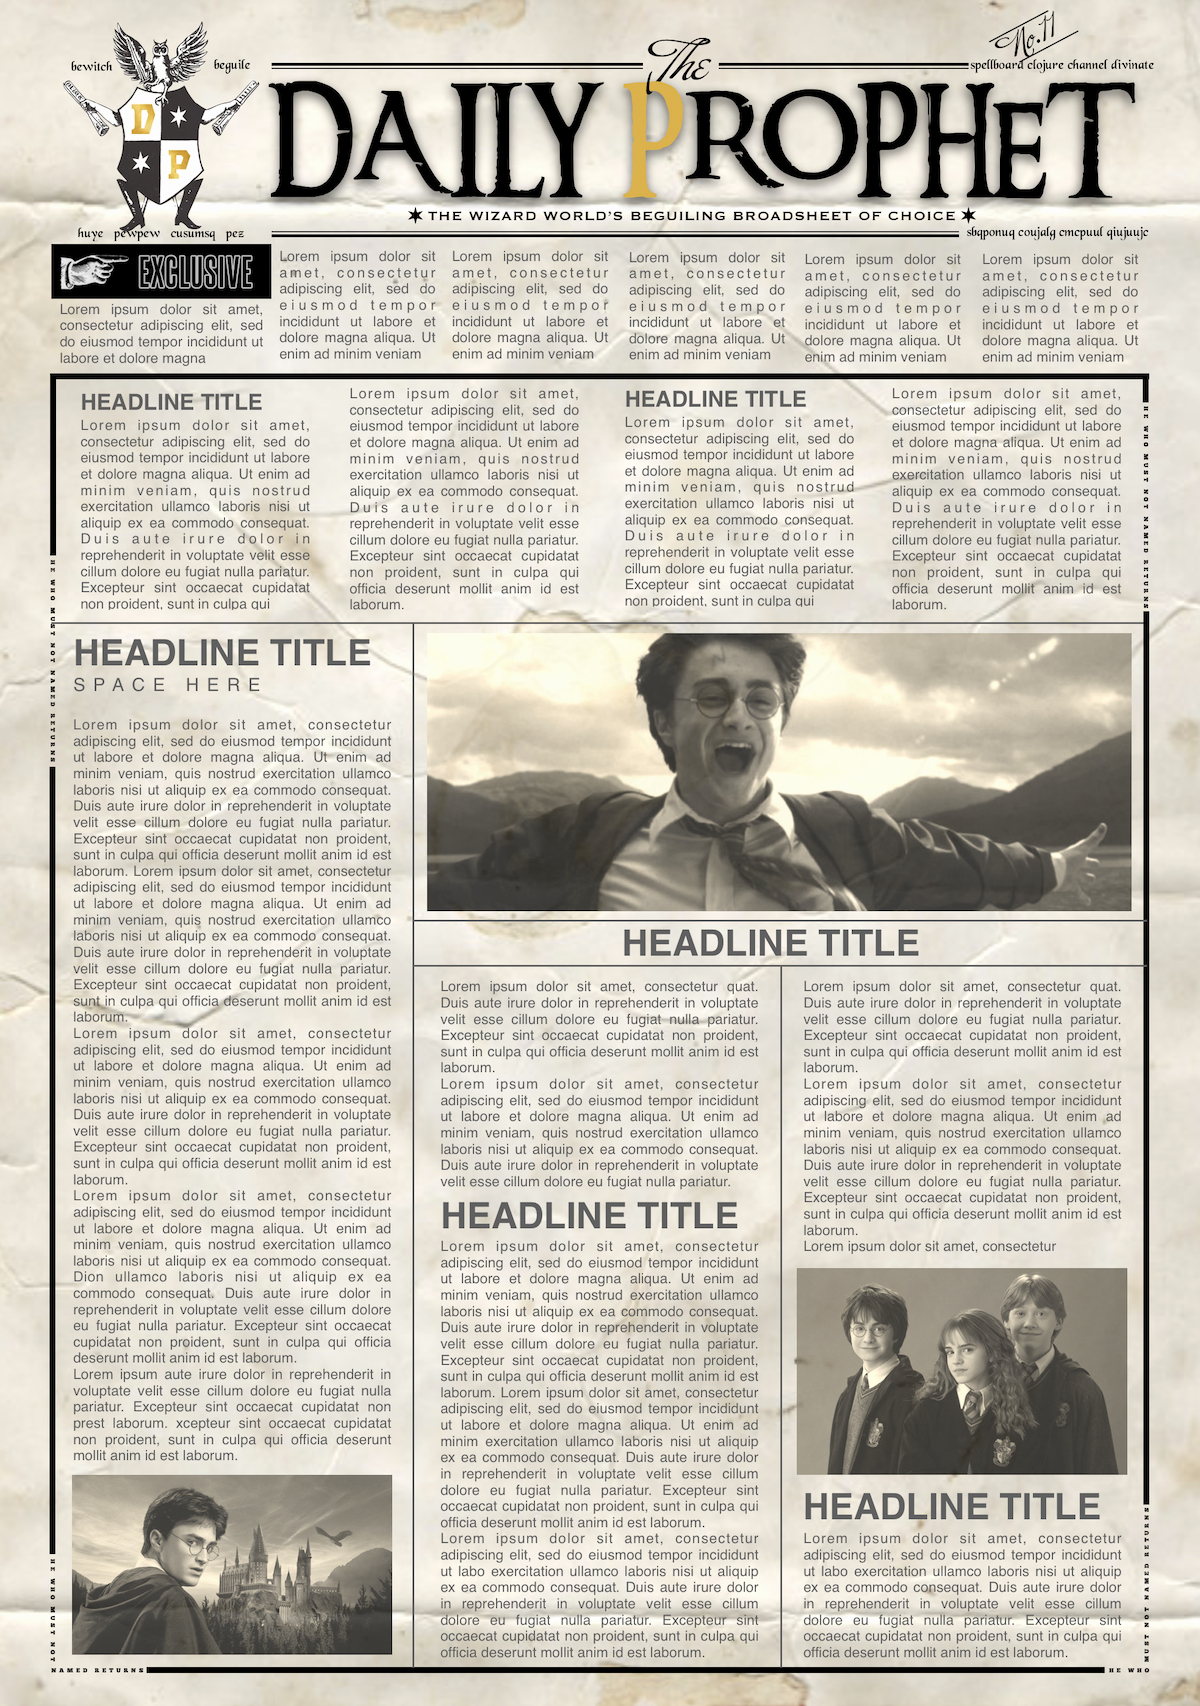 New York Times Newspaper Template Google Docs Lovely Daily Prophet Newspaper Template Harry Potter Word